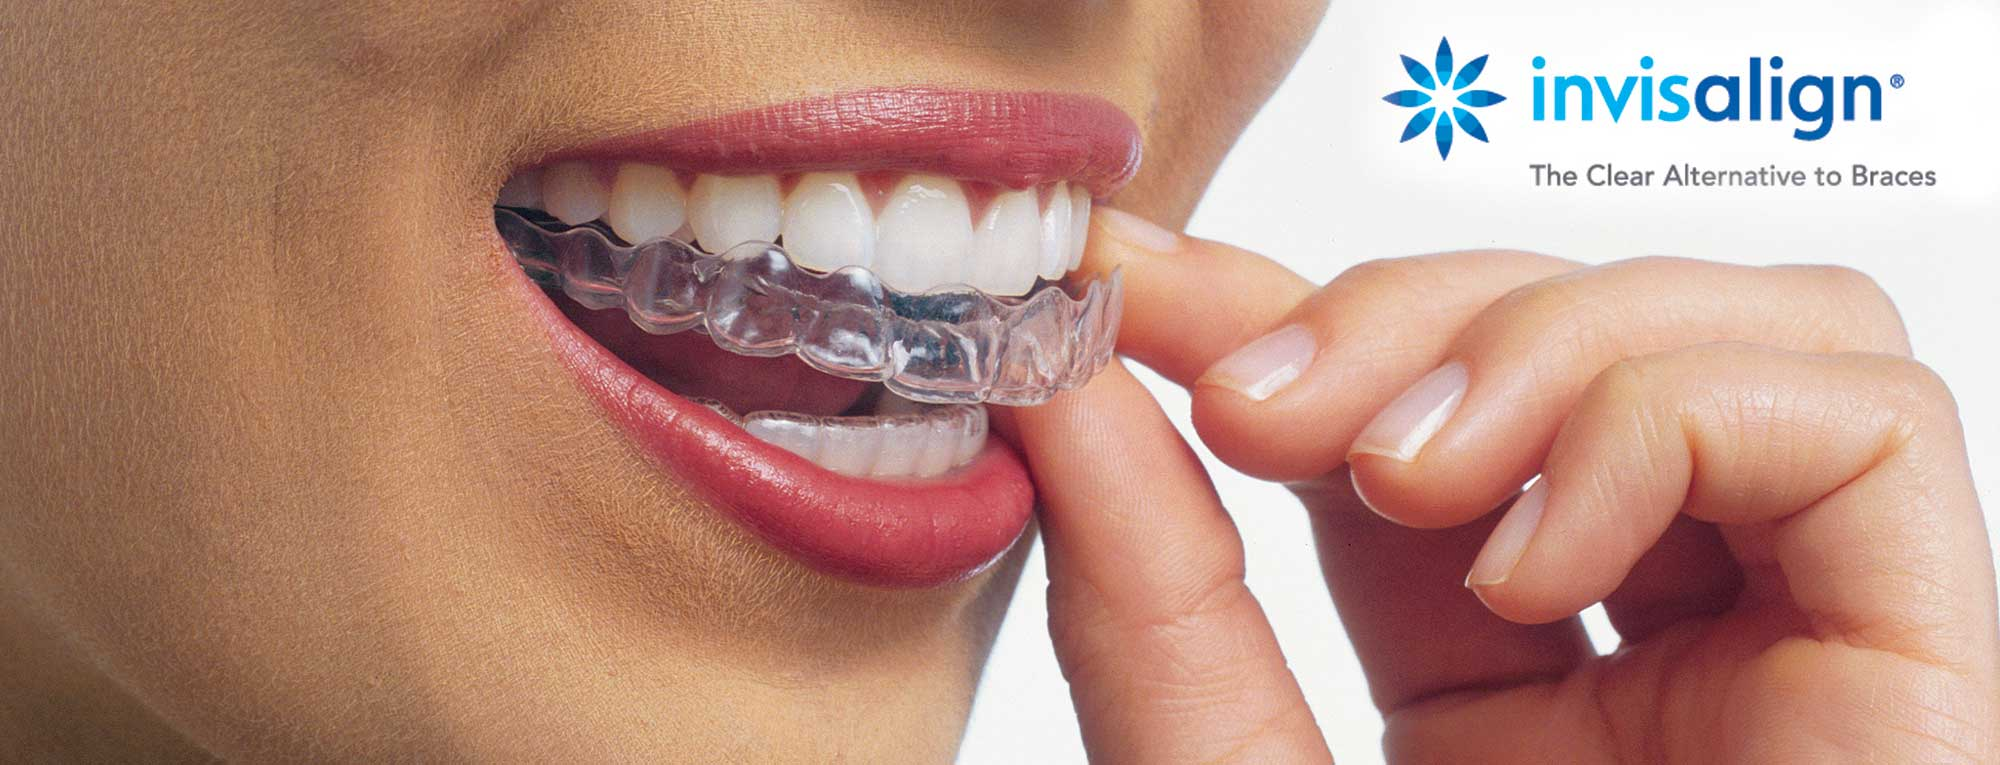 Invisalign Dentist Long Beach